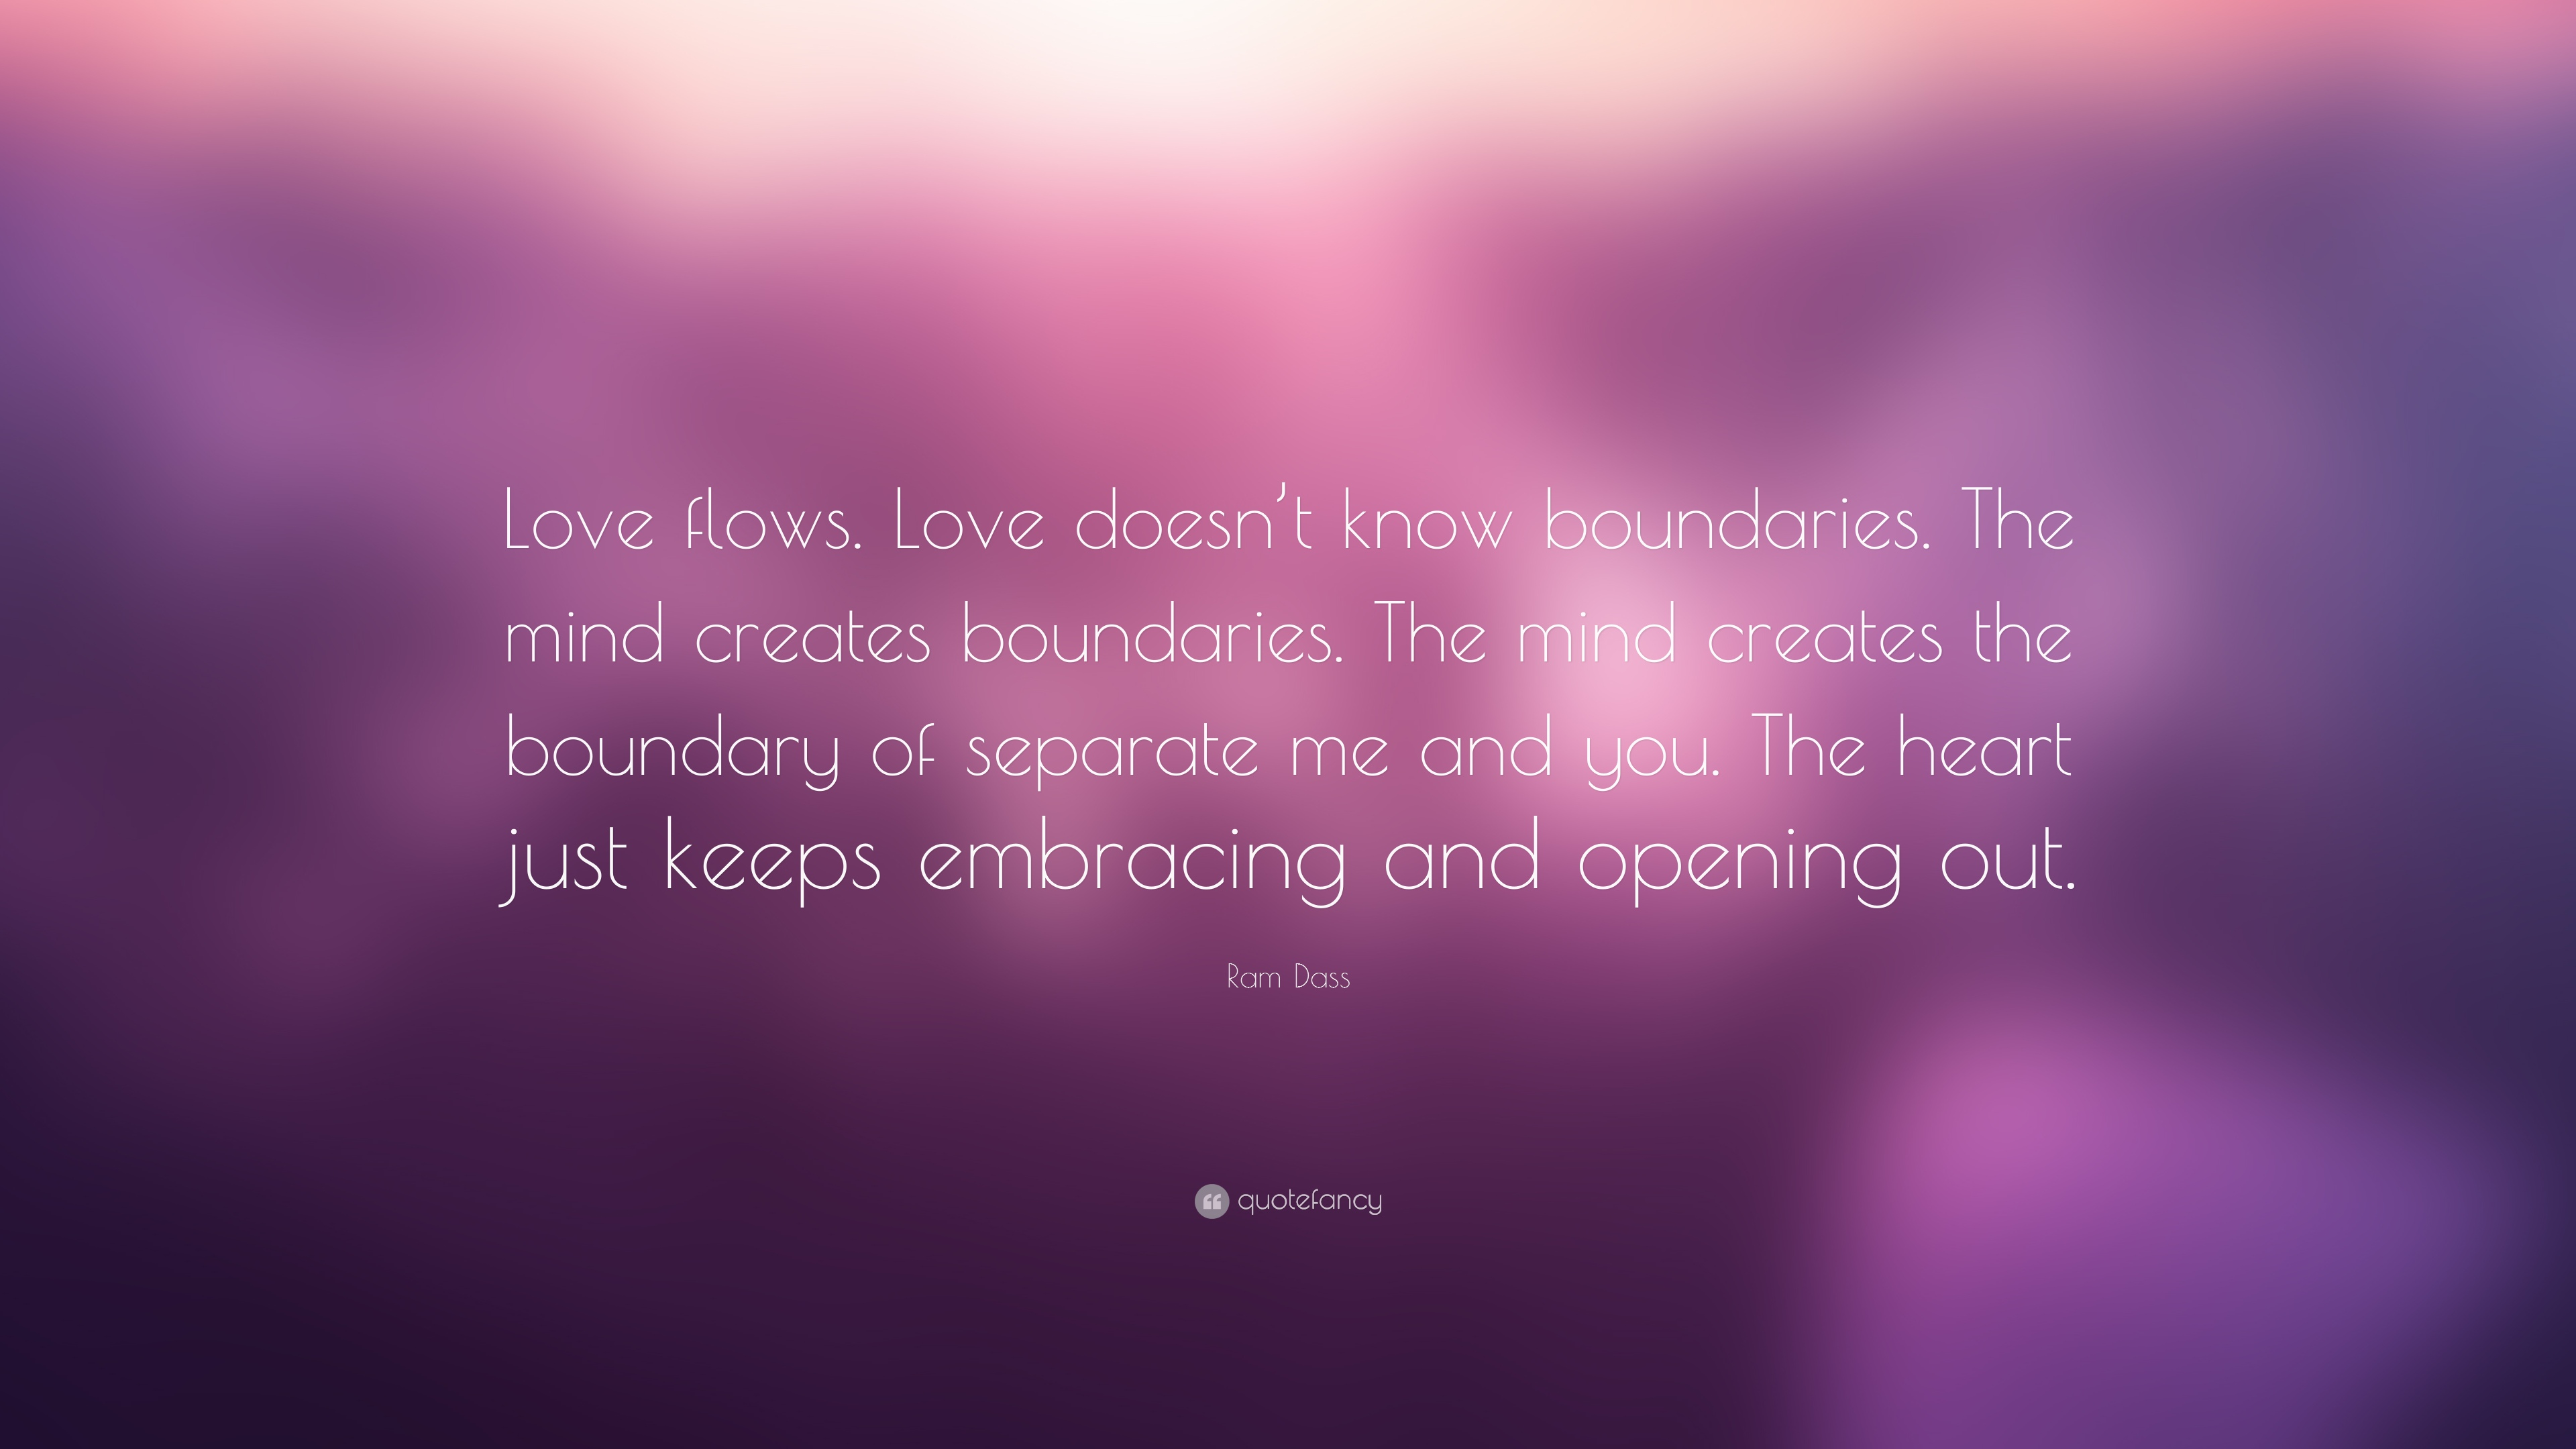 Ram Dass Quote Love Flows Love Doesnt Know Boundaries The Mind